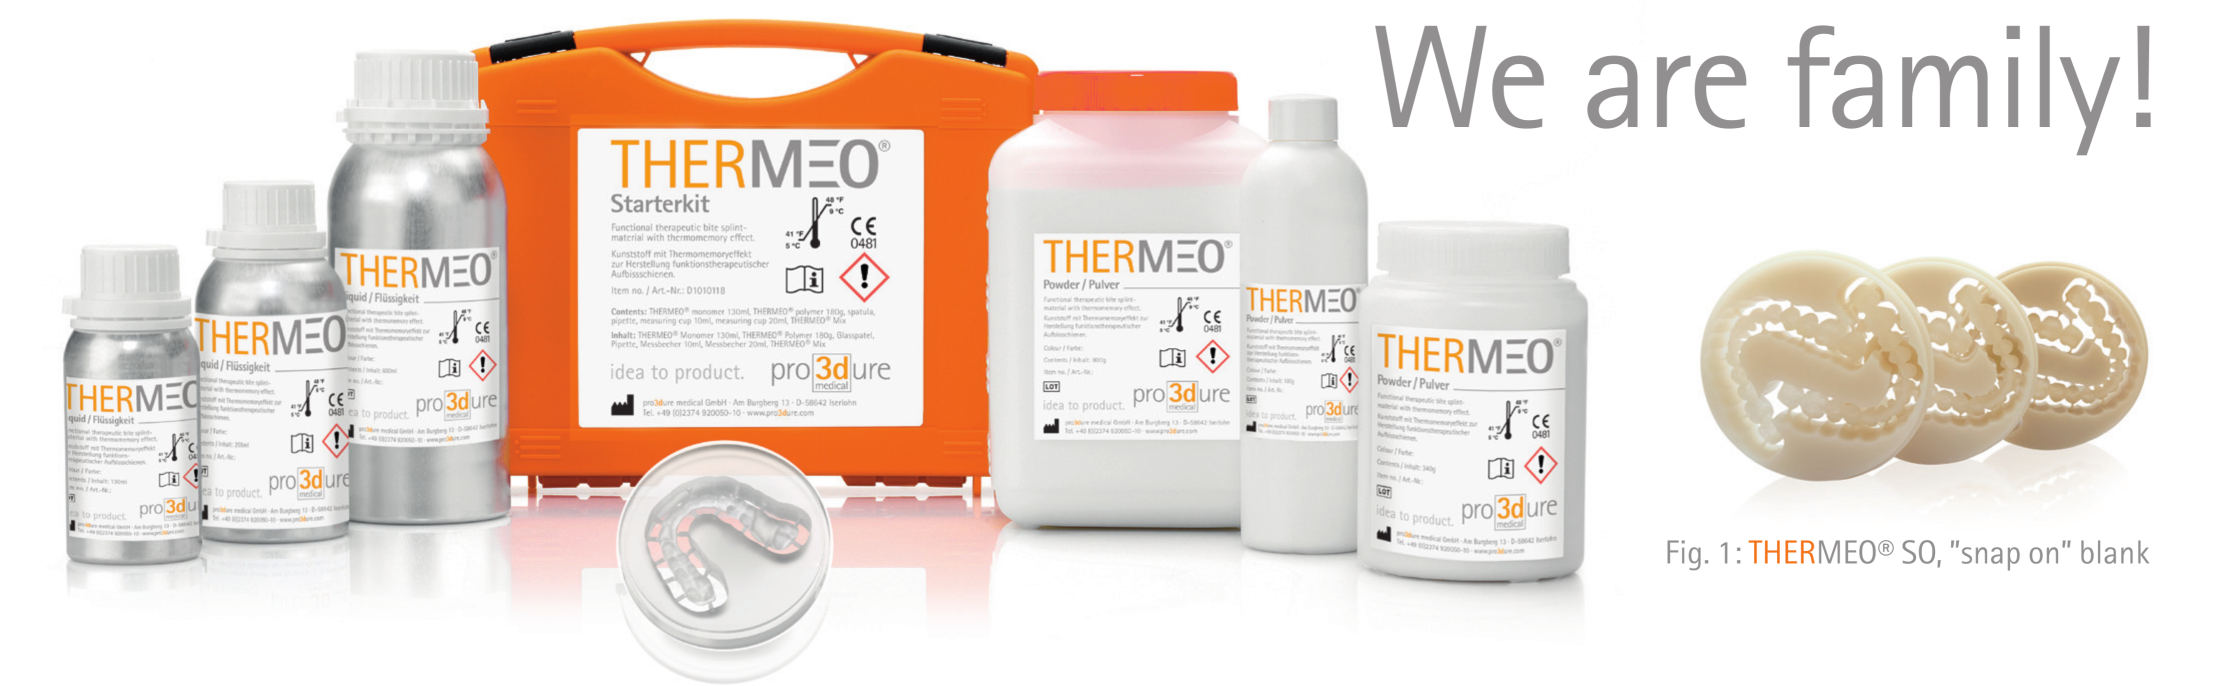 THERMEO-flyer_fig1